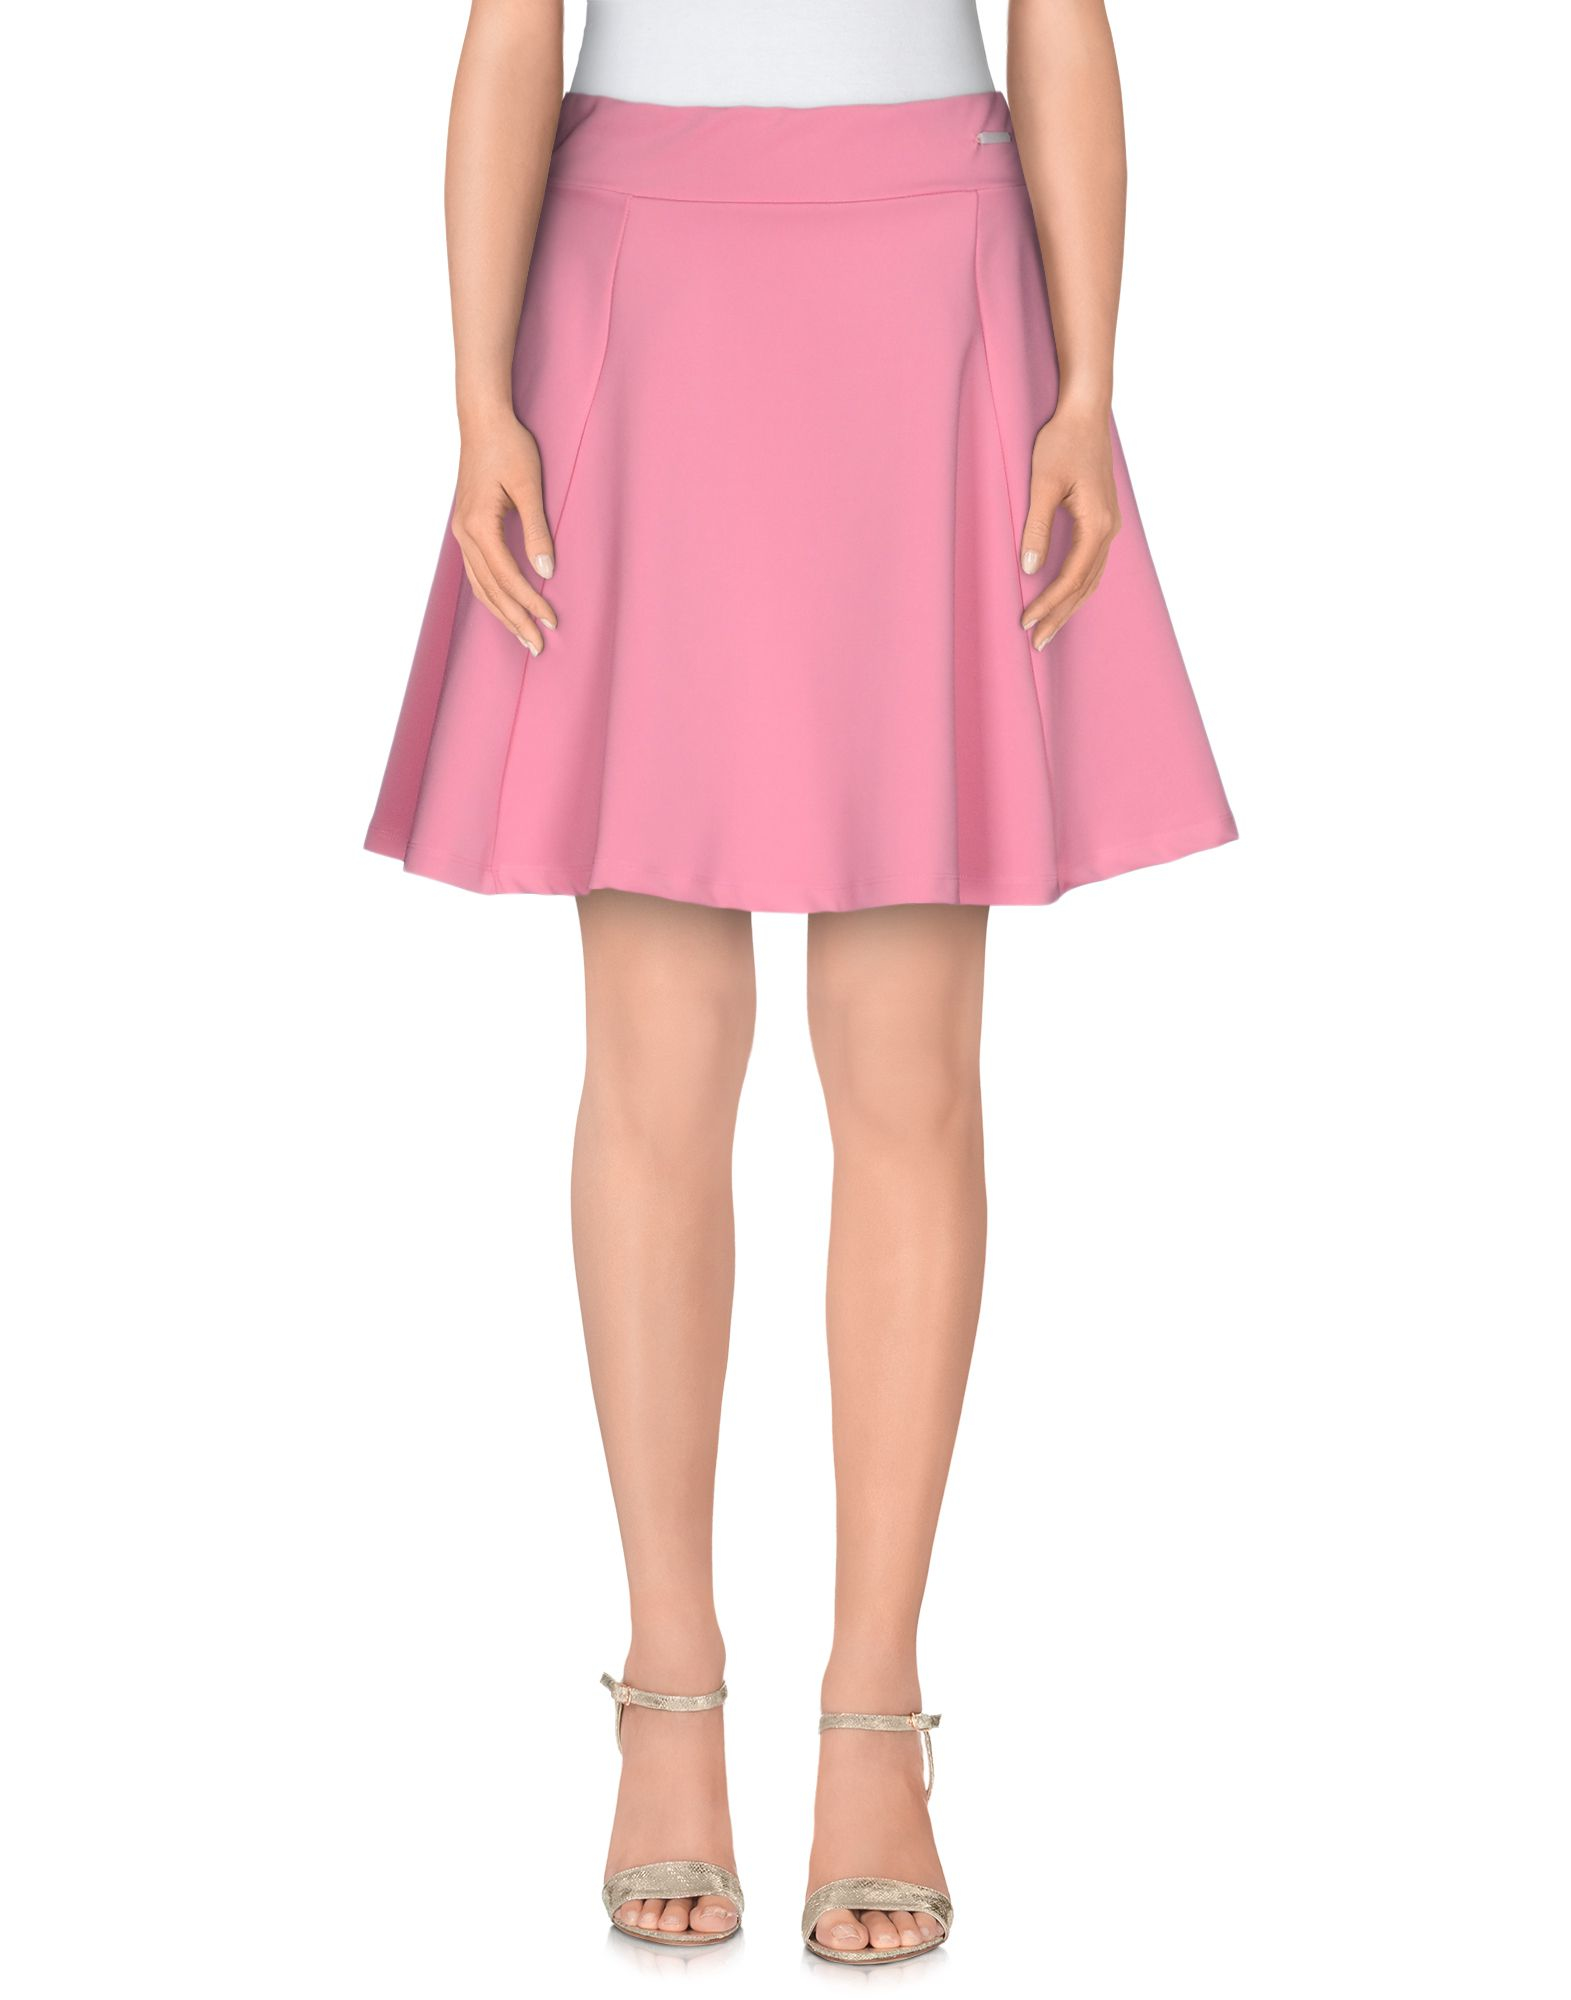 maison espin knee length skirt in pink lyst